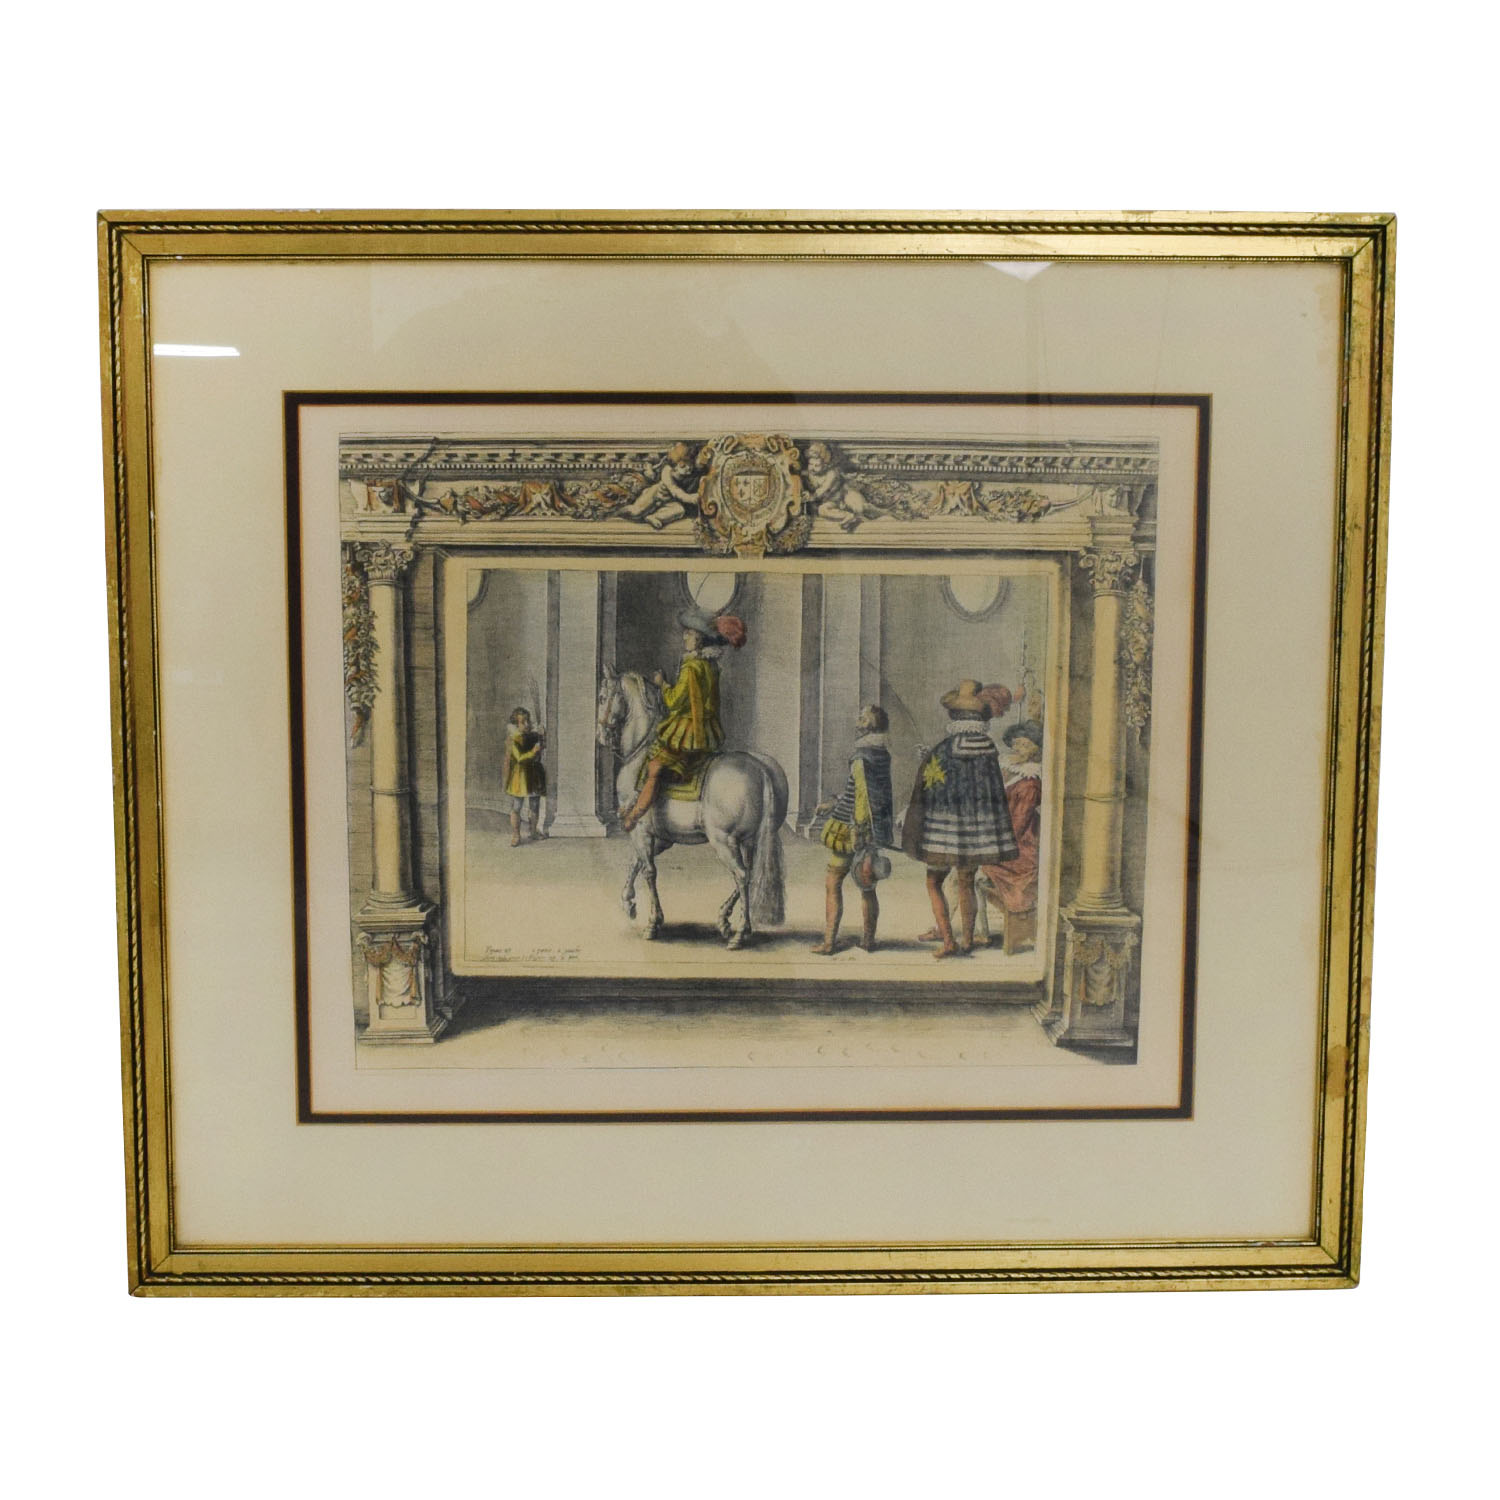 Vintage French Equestrian Print Two sale